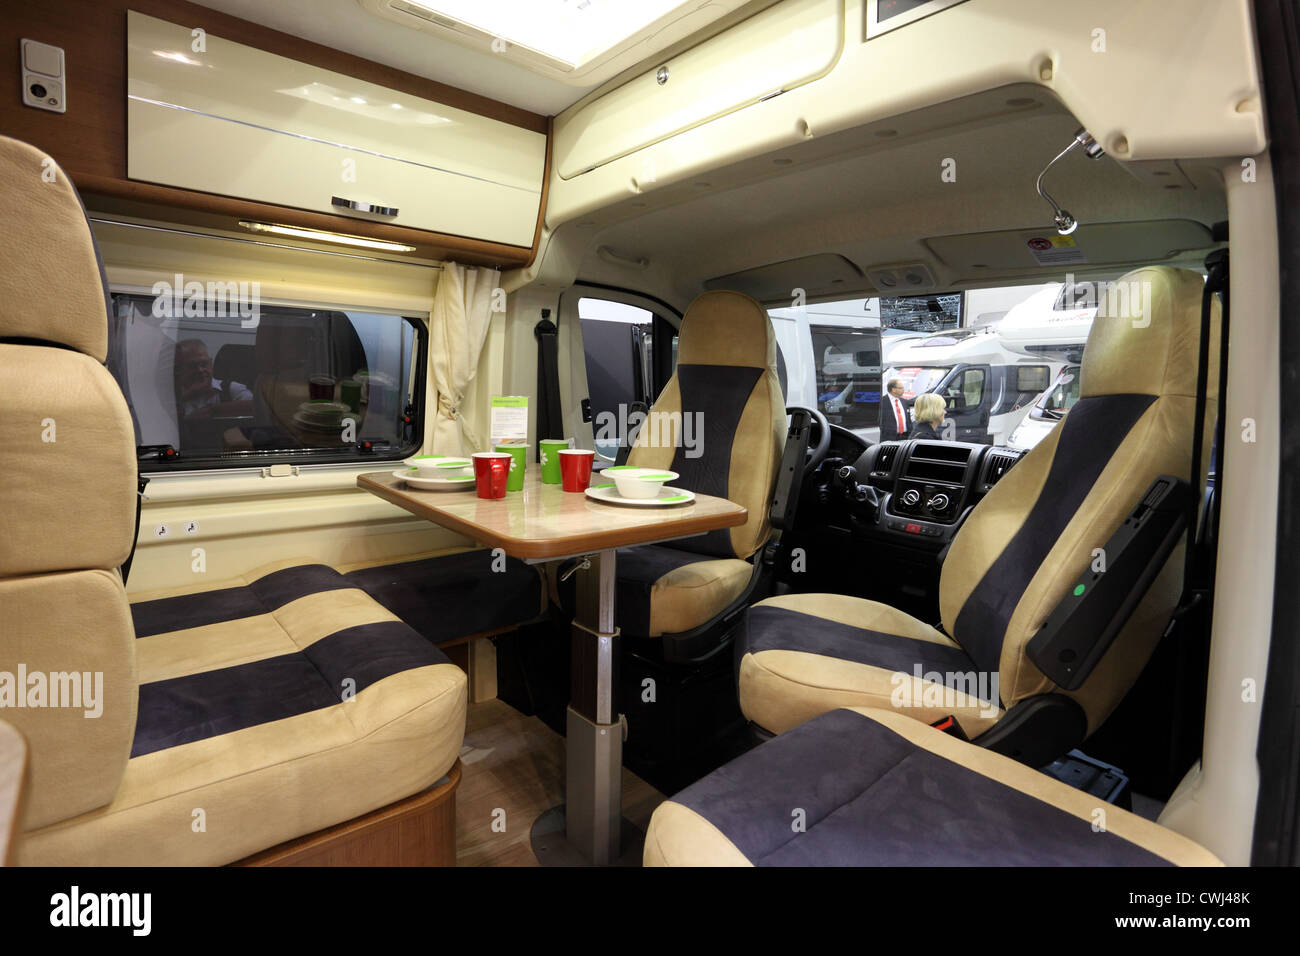 Interior Of A Modern Camper Van At The Caravan Salon Exhibition 2012 On August 27